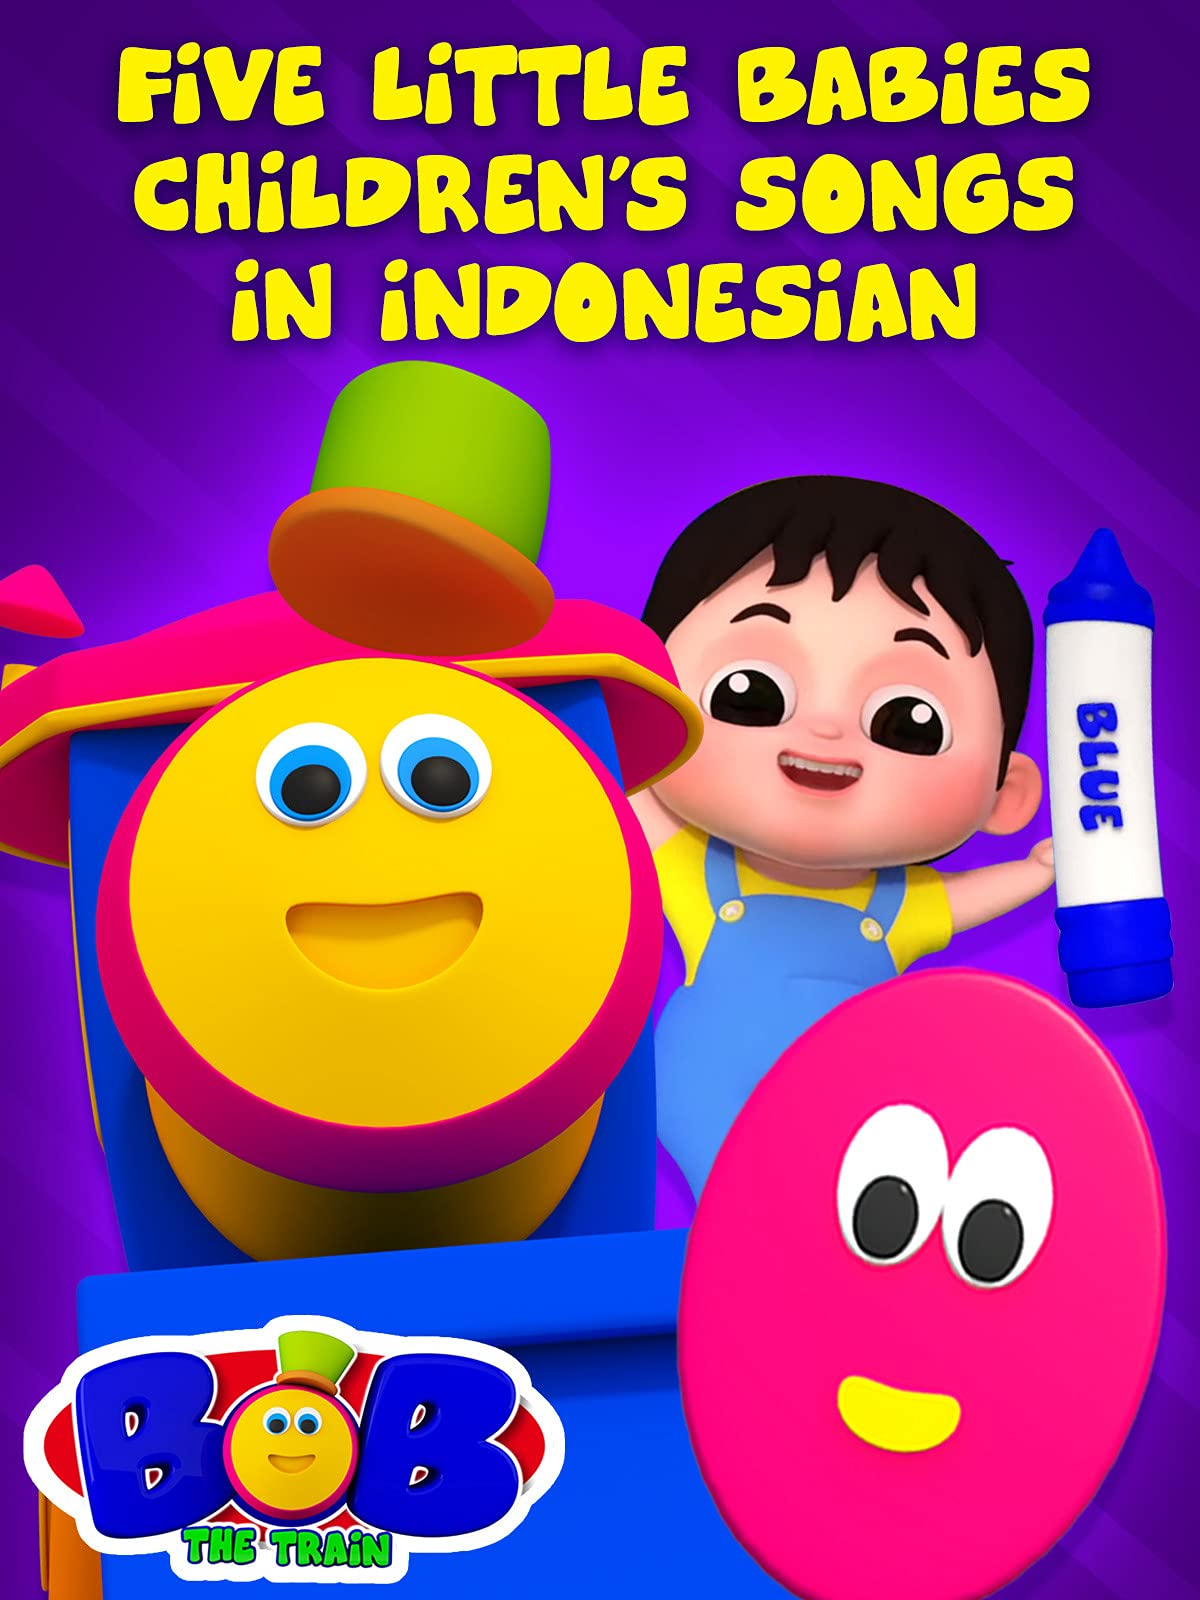 Five Little Babies Children's Songs in Indonesian - Bob the Train